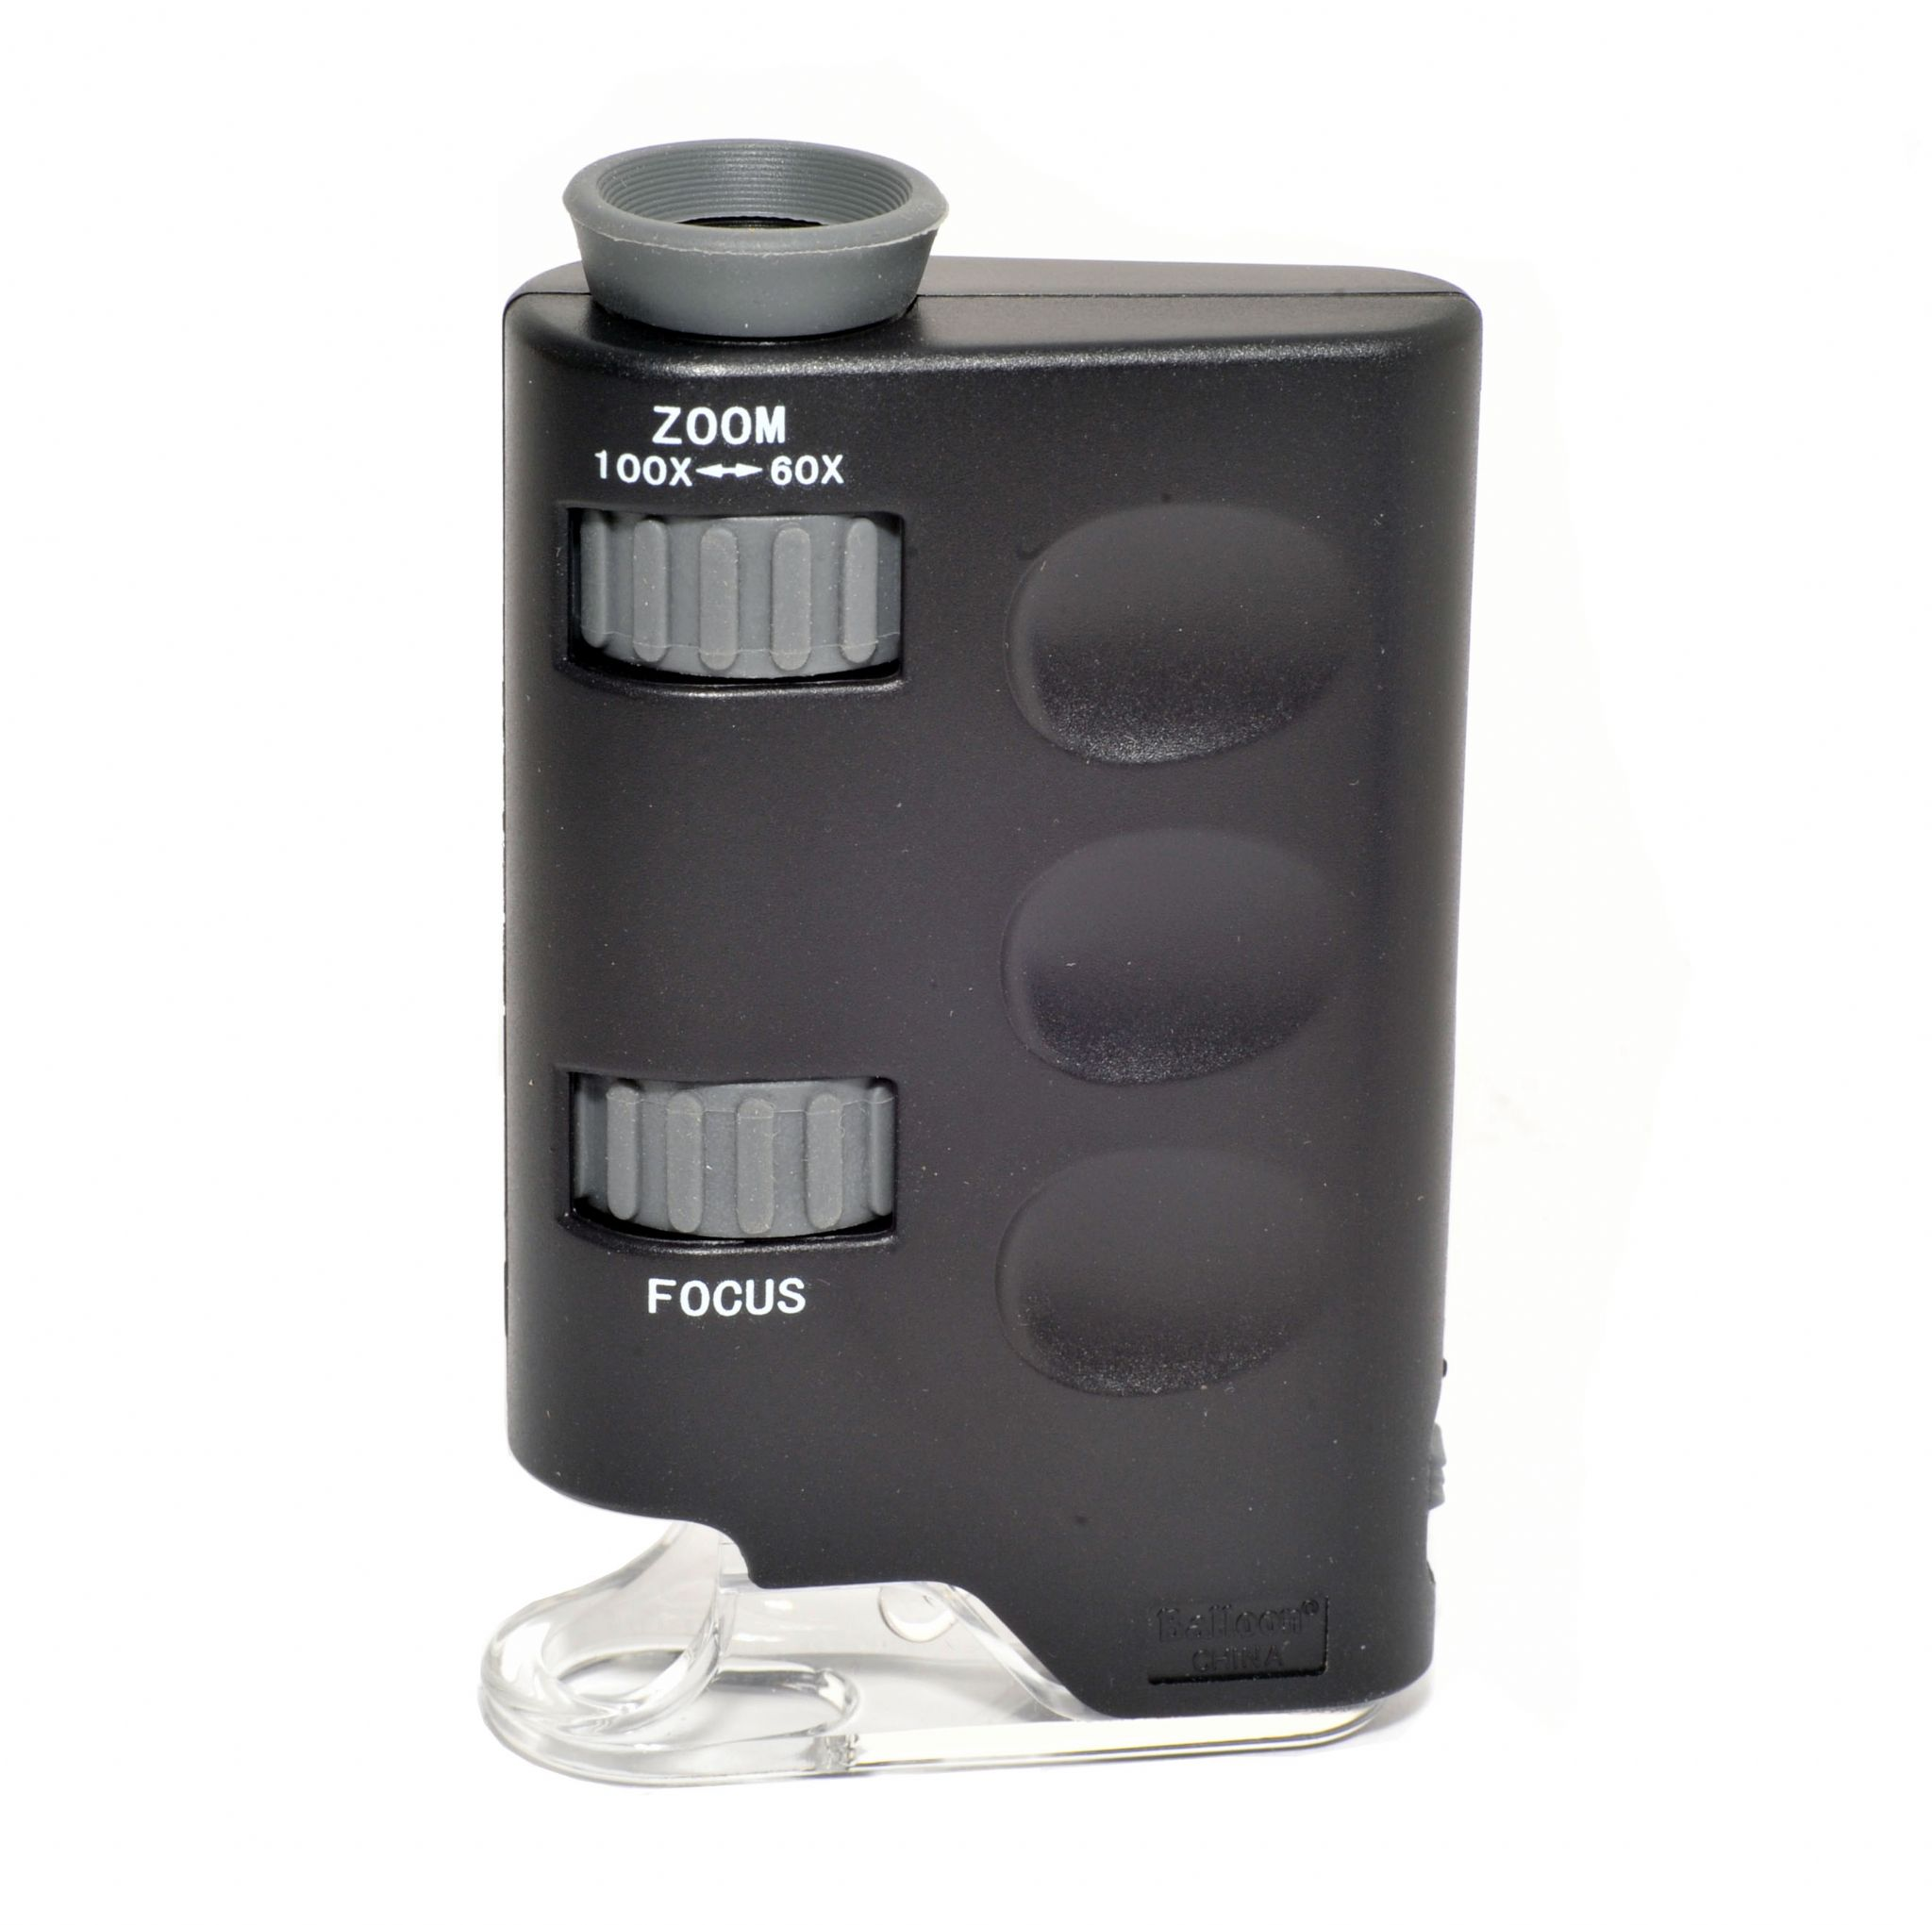 Zoom Microscope with LED 60x-100x magnification